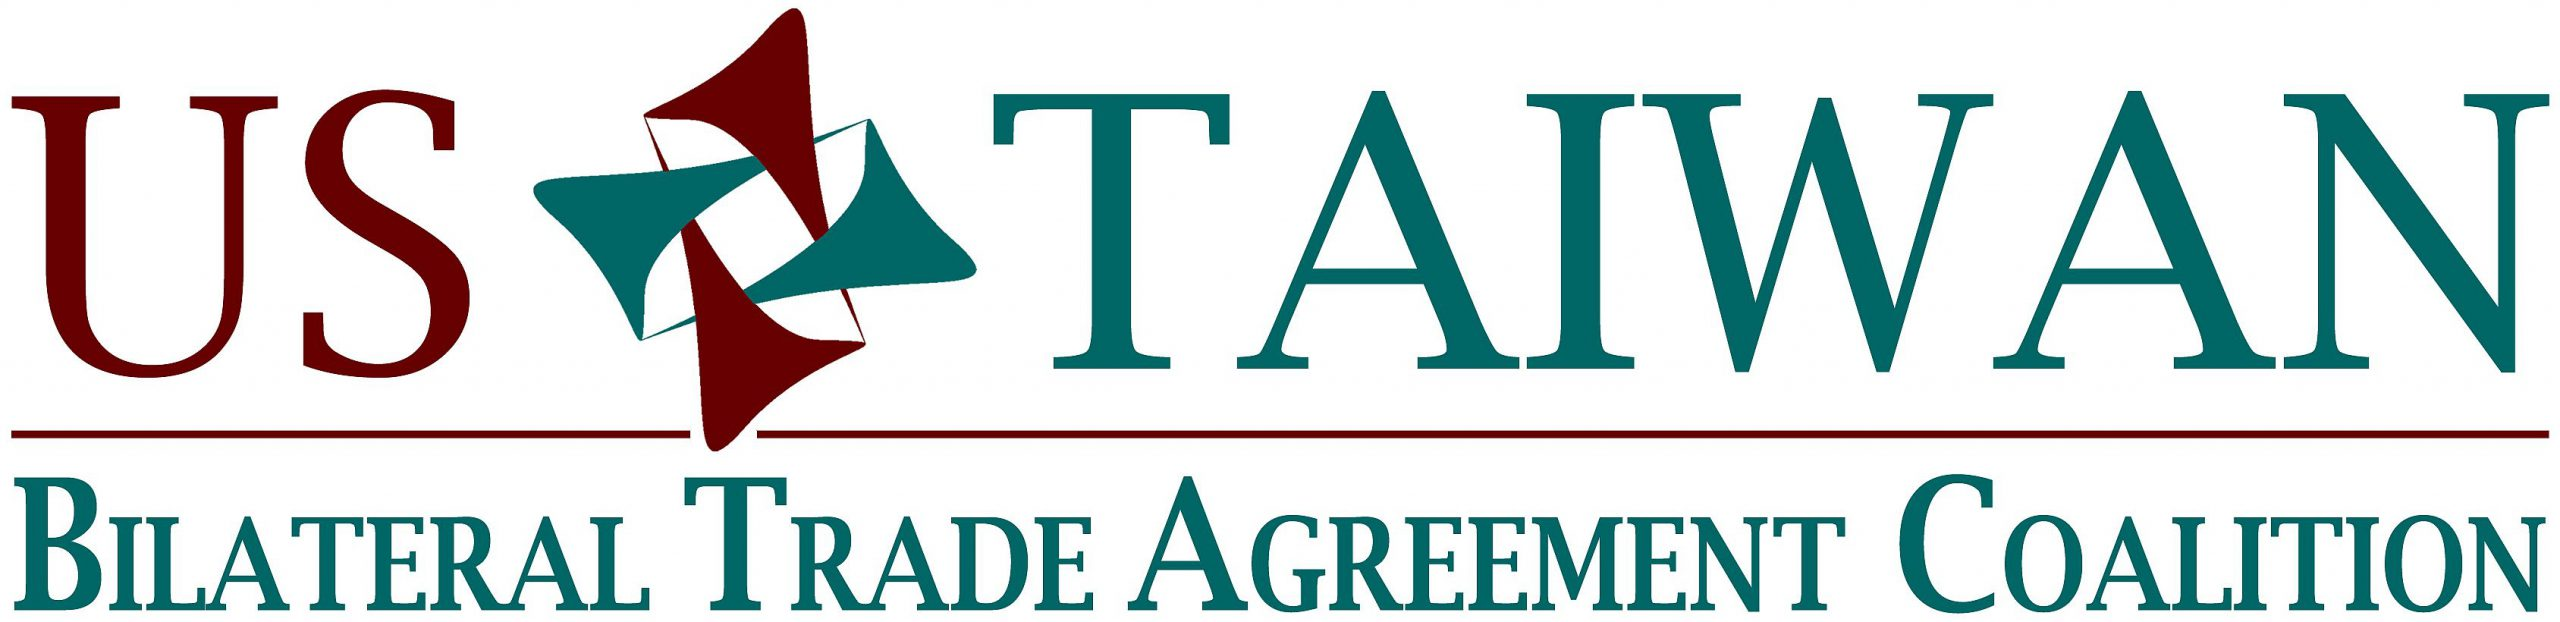 US-Taiwan Bilateral Trade Agreement Coalition Logo